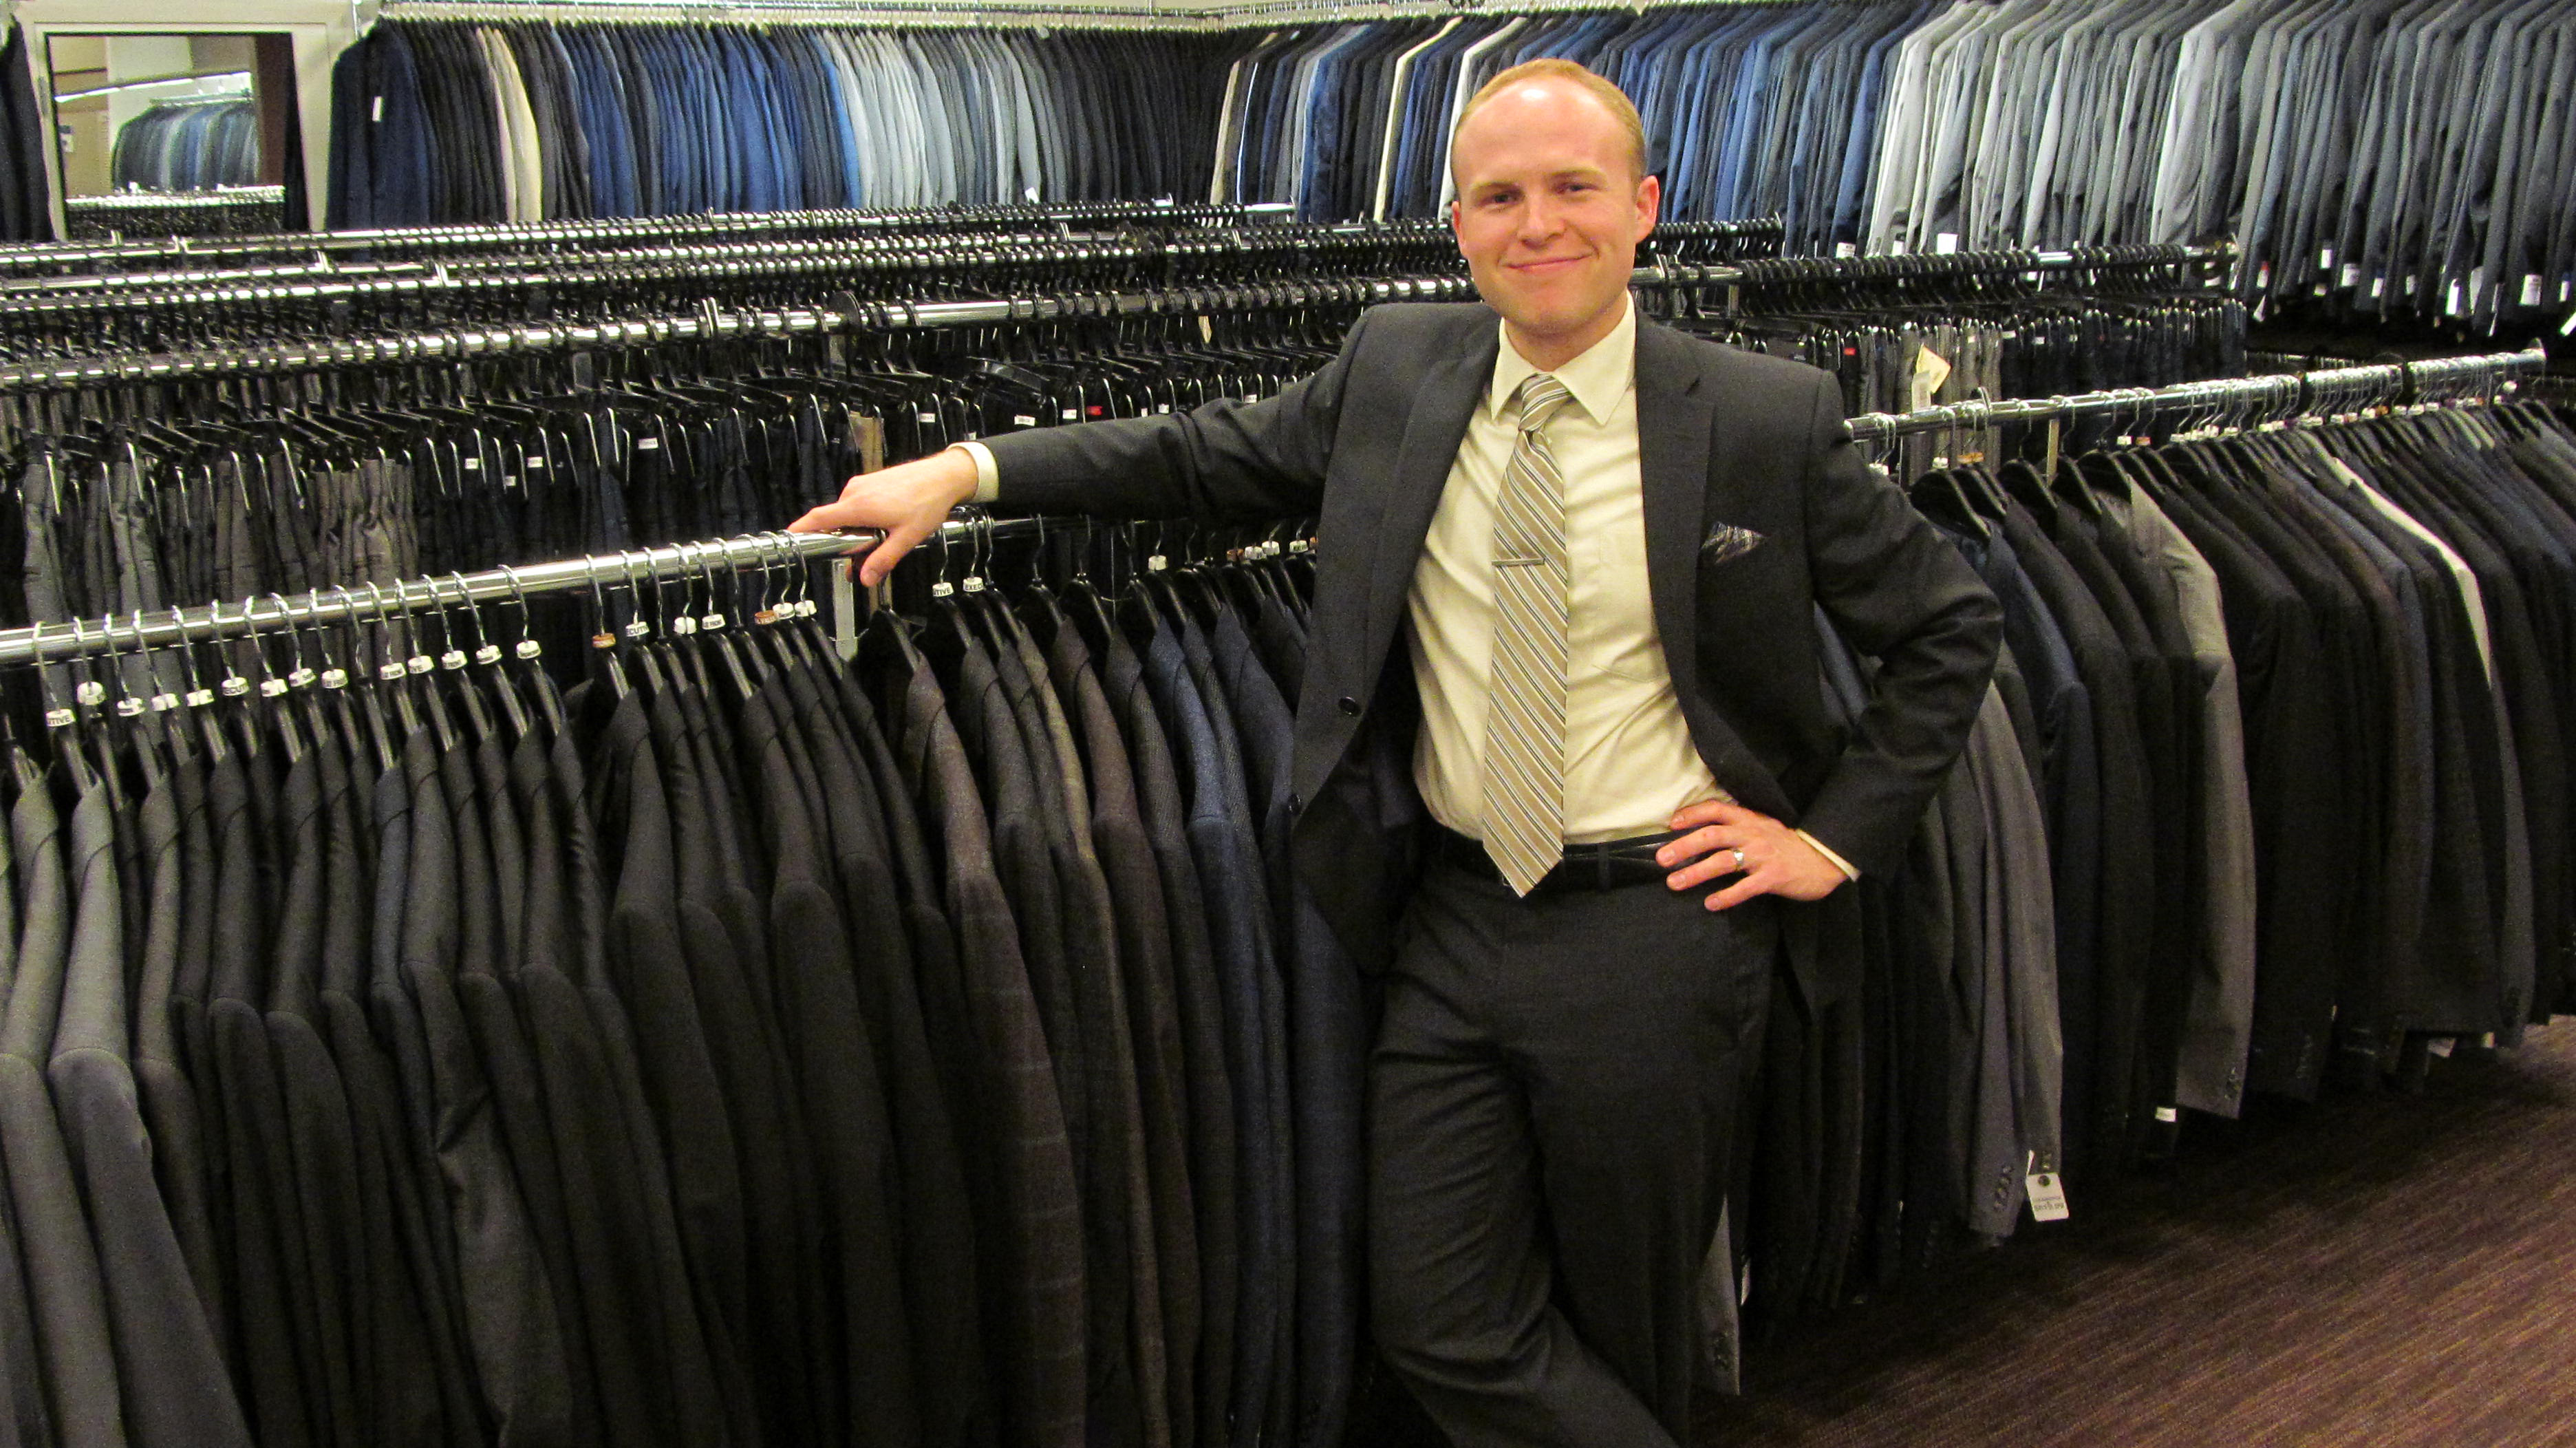 Although I sell suits, my official title at Men's Wearhouse is Wardrobe Consultant. I make  suggestions about style and fit based on years of experience. I pride myself on giving my customers  world-class customer service, which has taught me a lot about PR. Photo credit: Calvin Petersen, 2016.